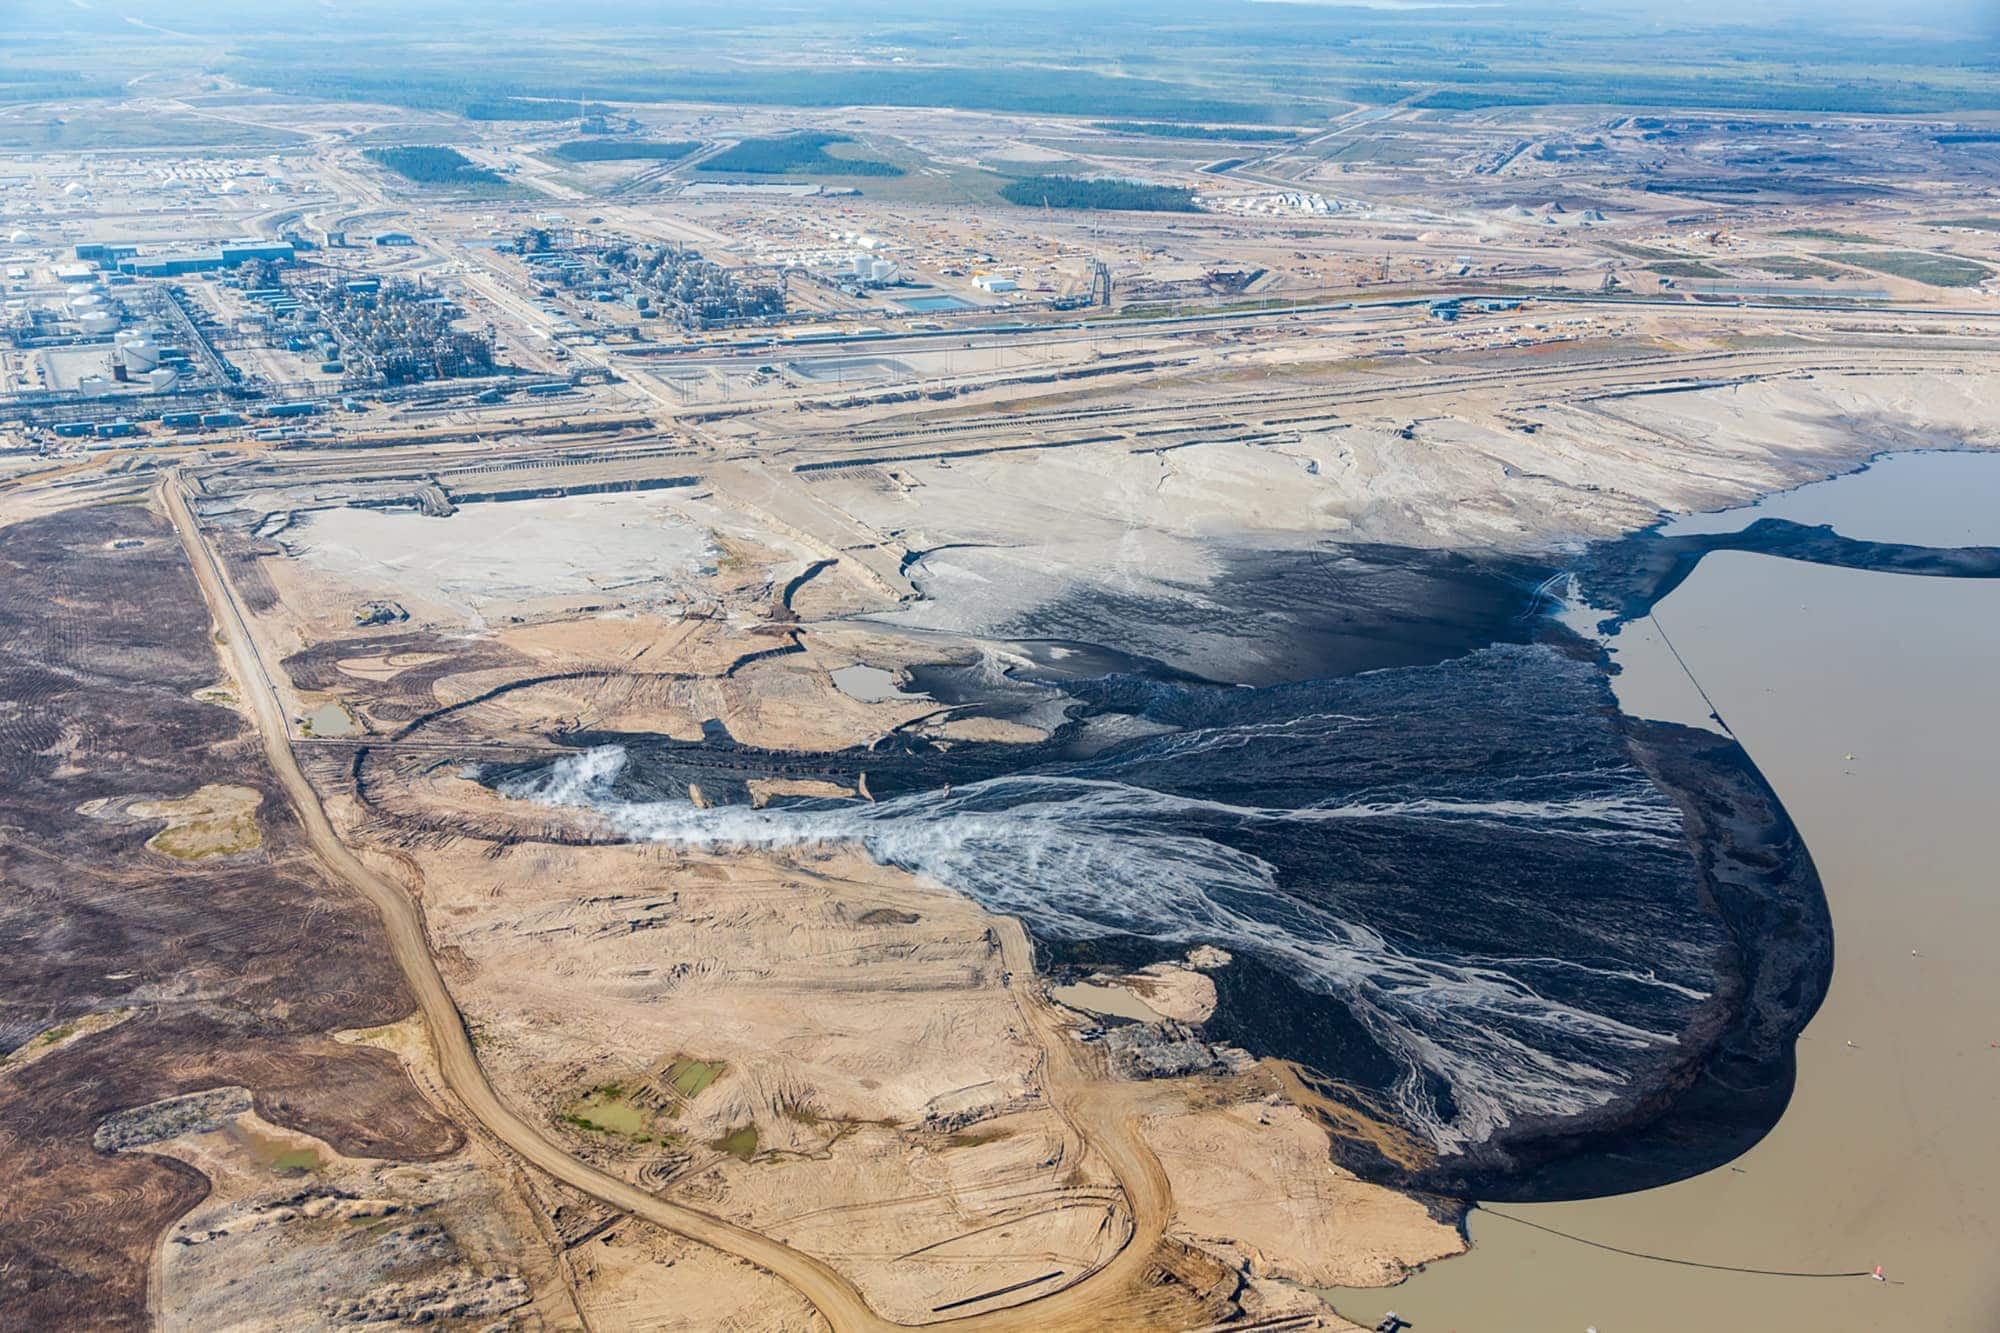 aerial view of oilsands site